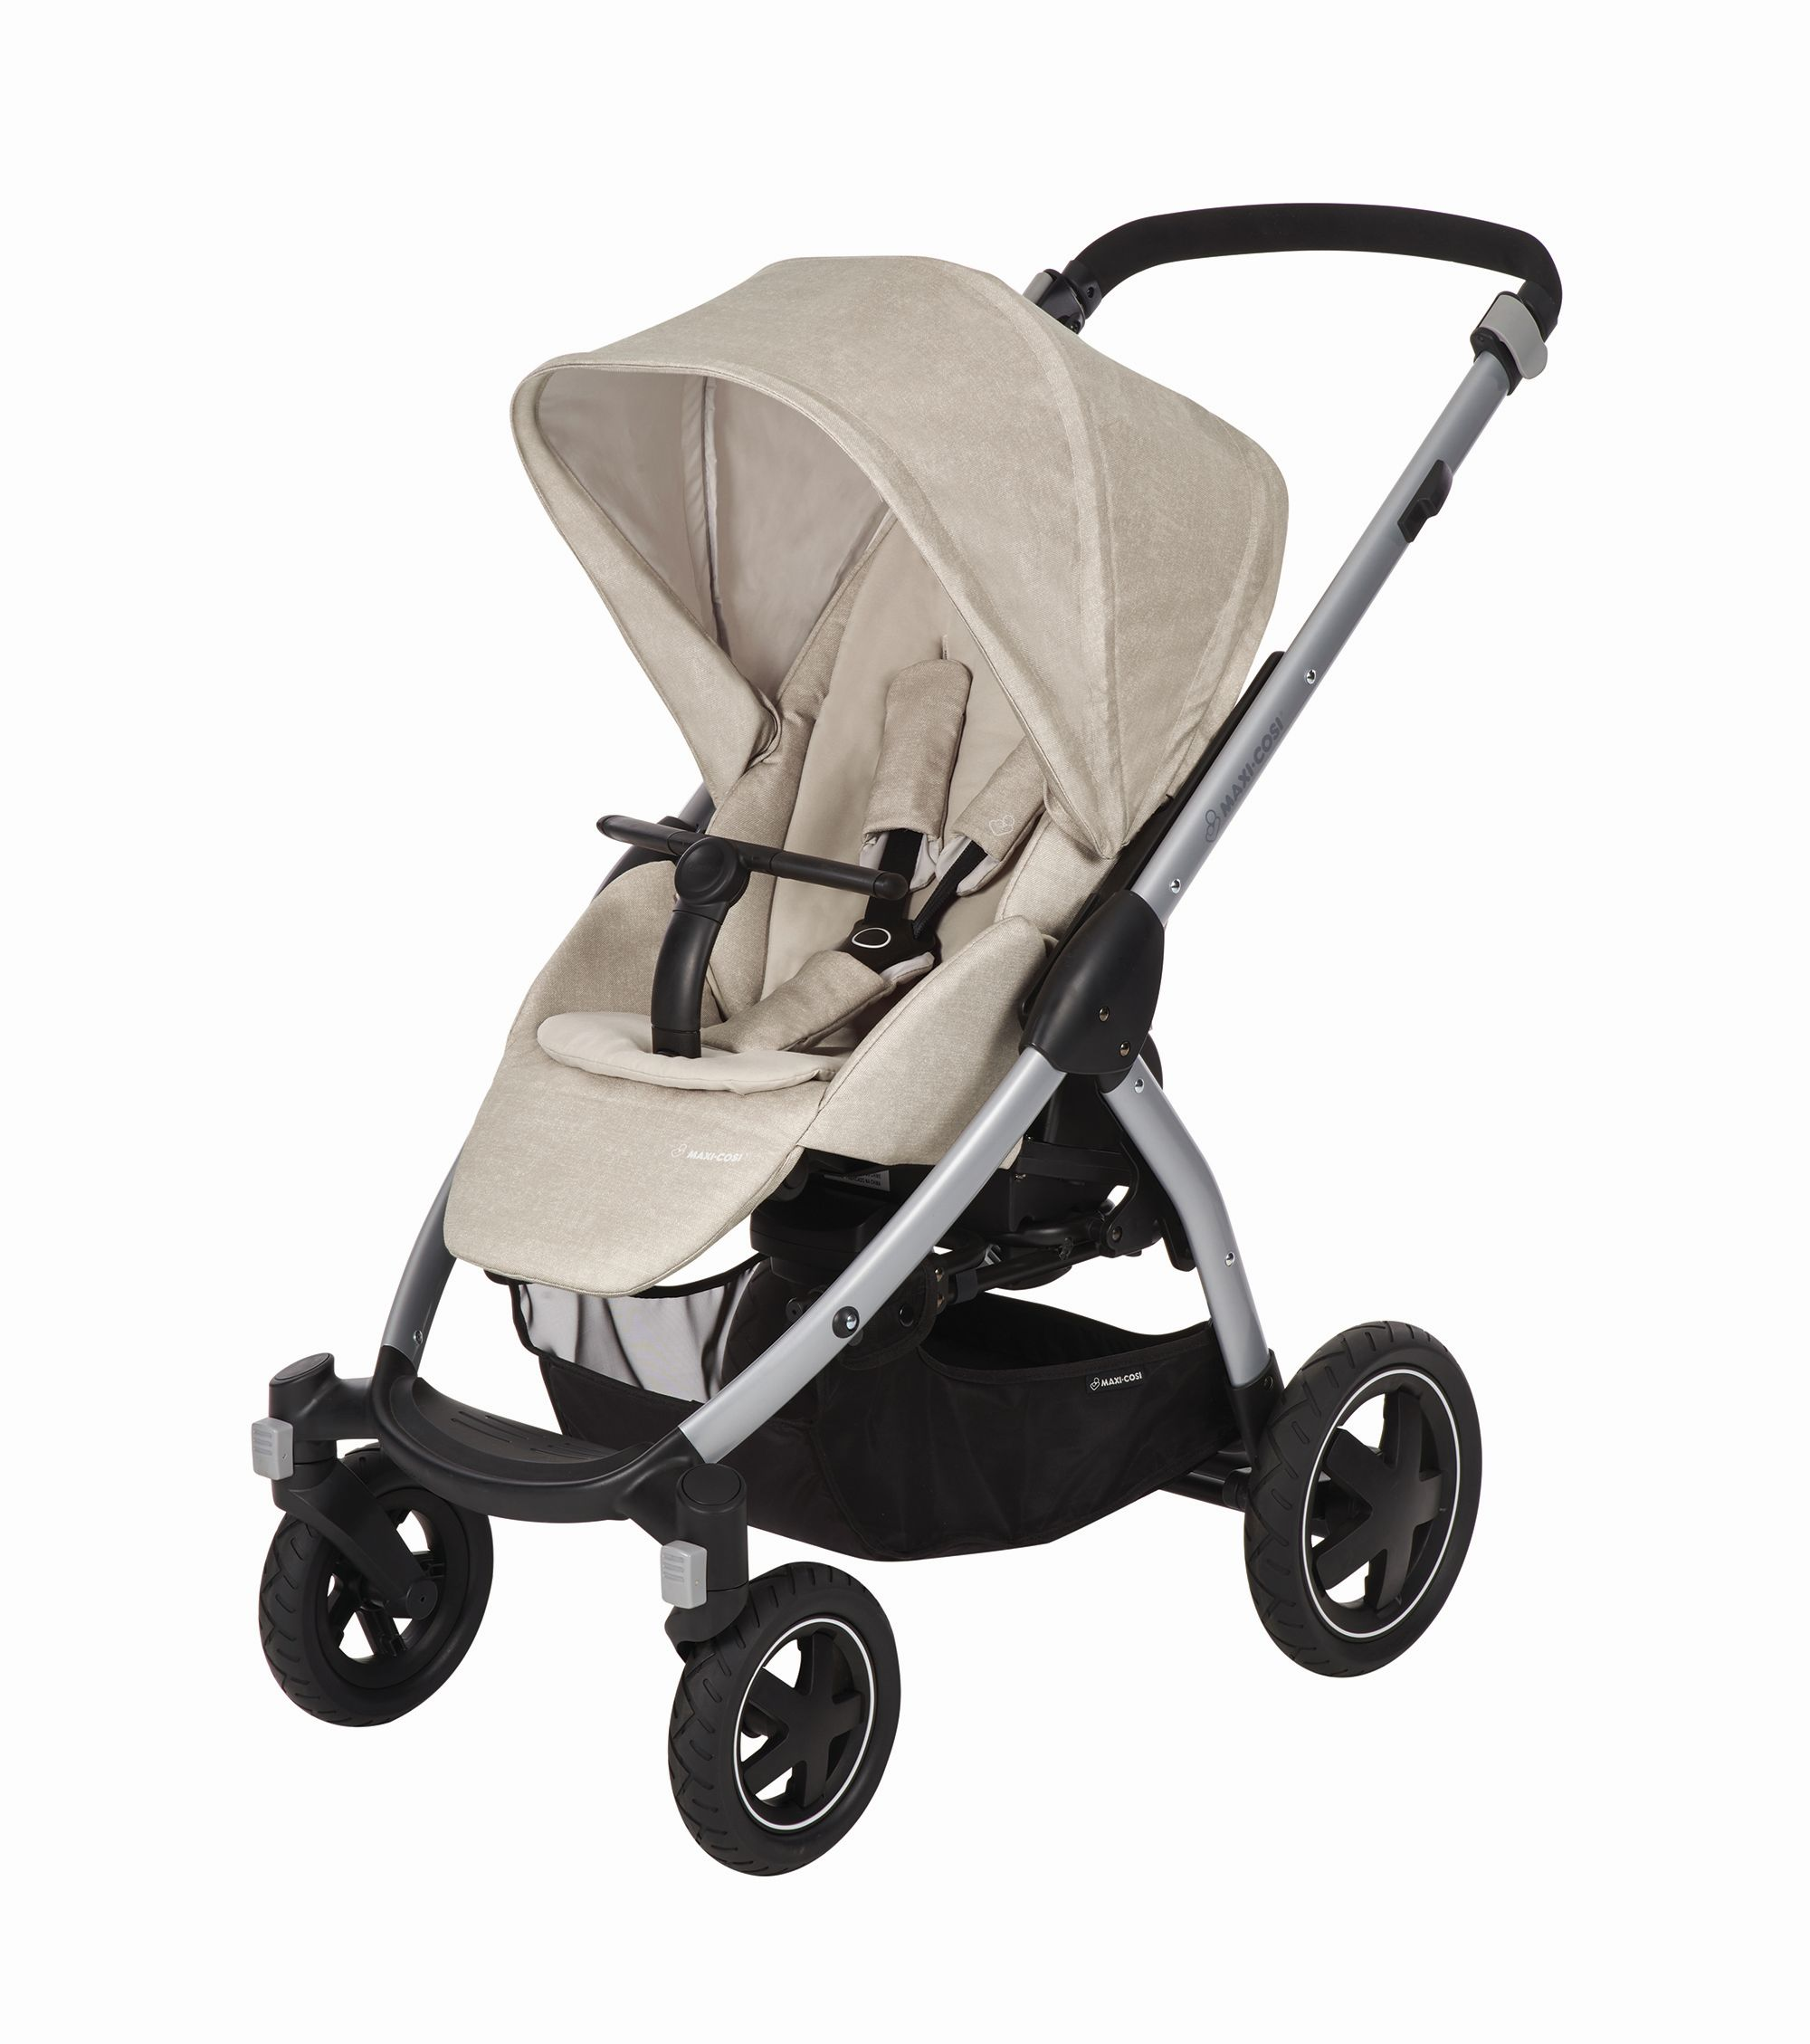 maxi cosi stroller stella 2018 nomad sand buy at. Black Bedroom Furniture Sets. Home Design Ideas